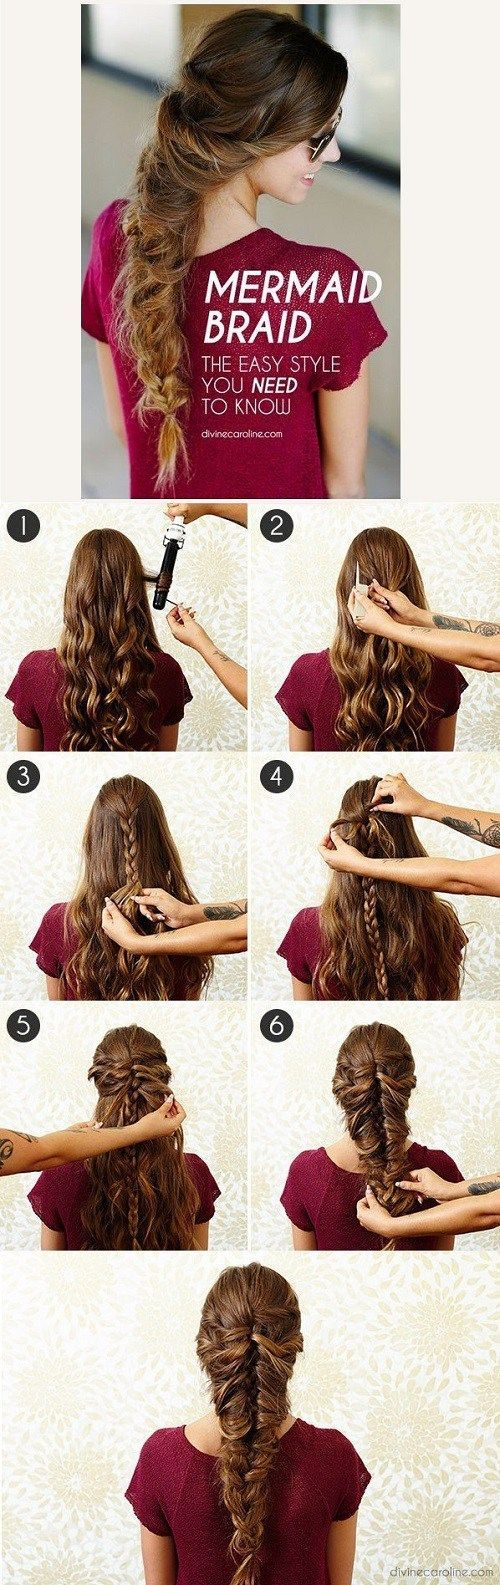 hair tutorials you can totally diy mermaid braid mermaid and